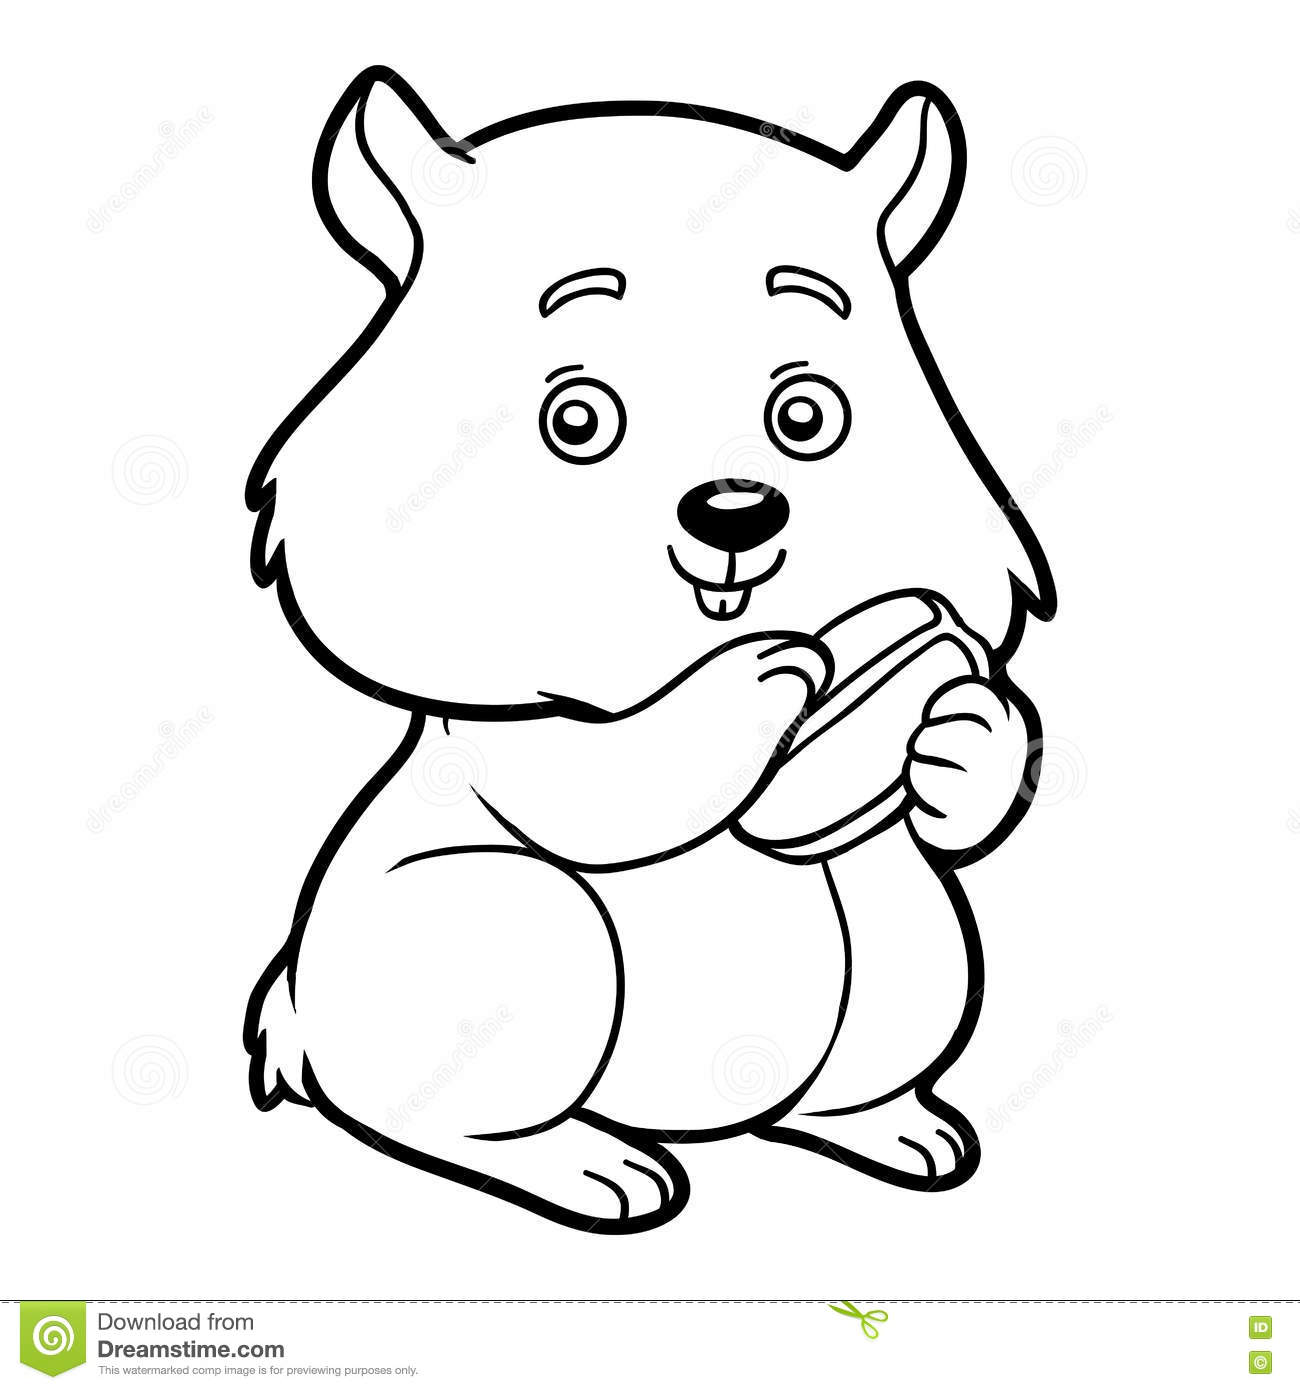 Coloring Book Hamster Stock Vector Illustration Of Rodent 76819650